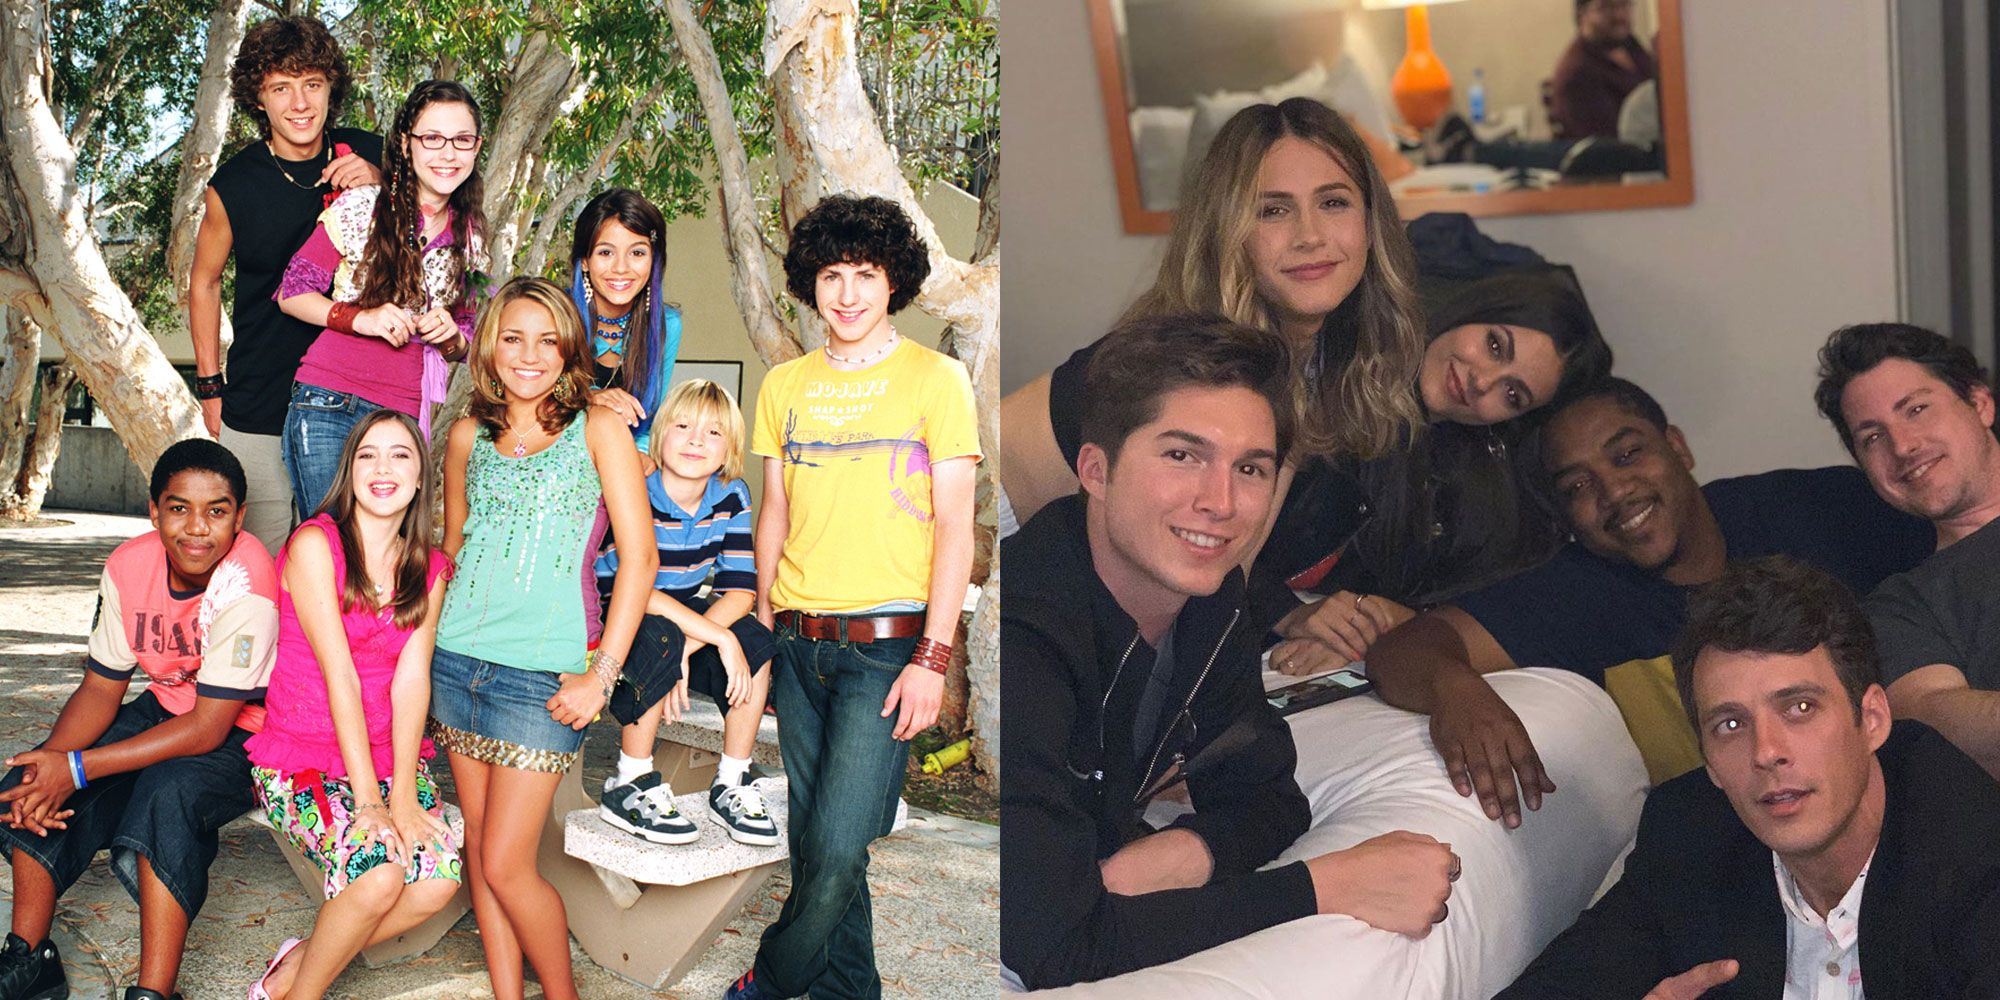 Zoey 101 Star Confirms The Cast Is Working Together Again